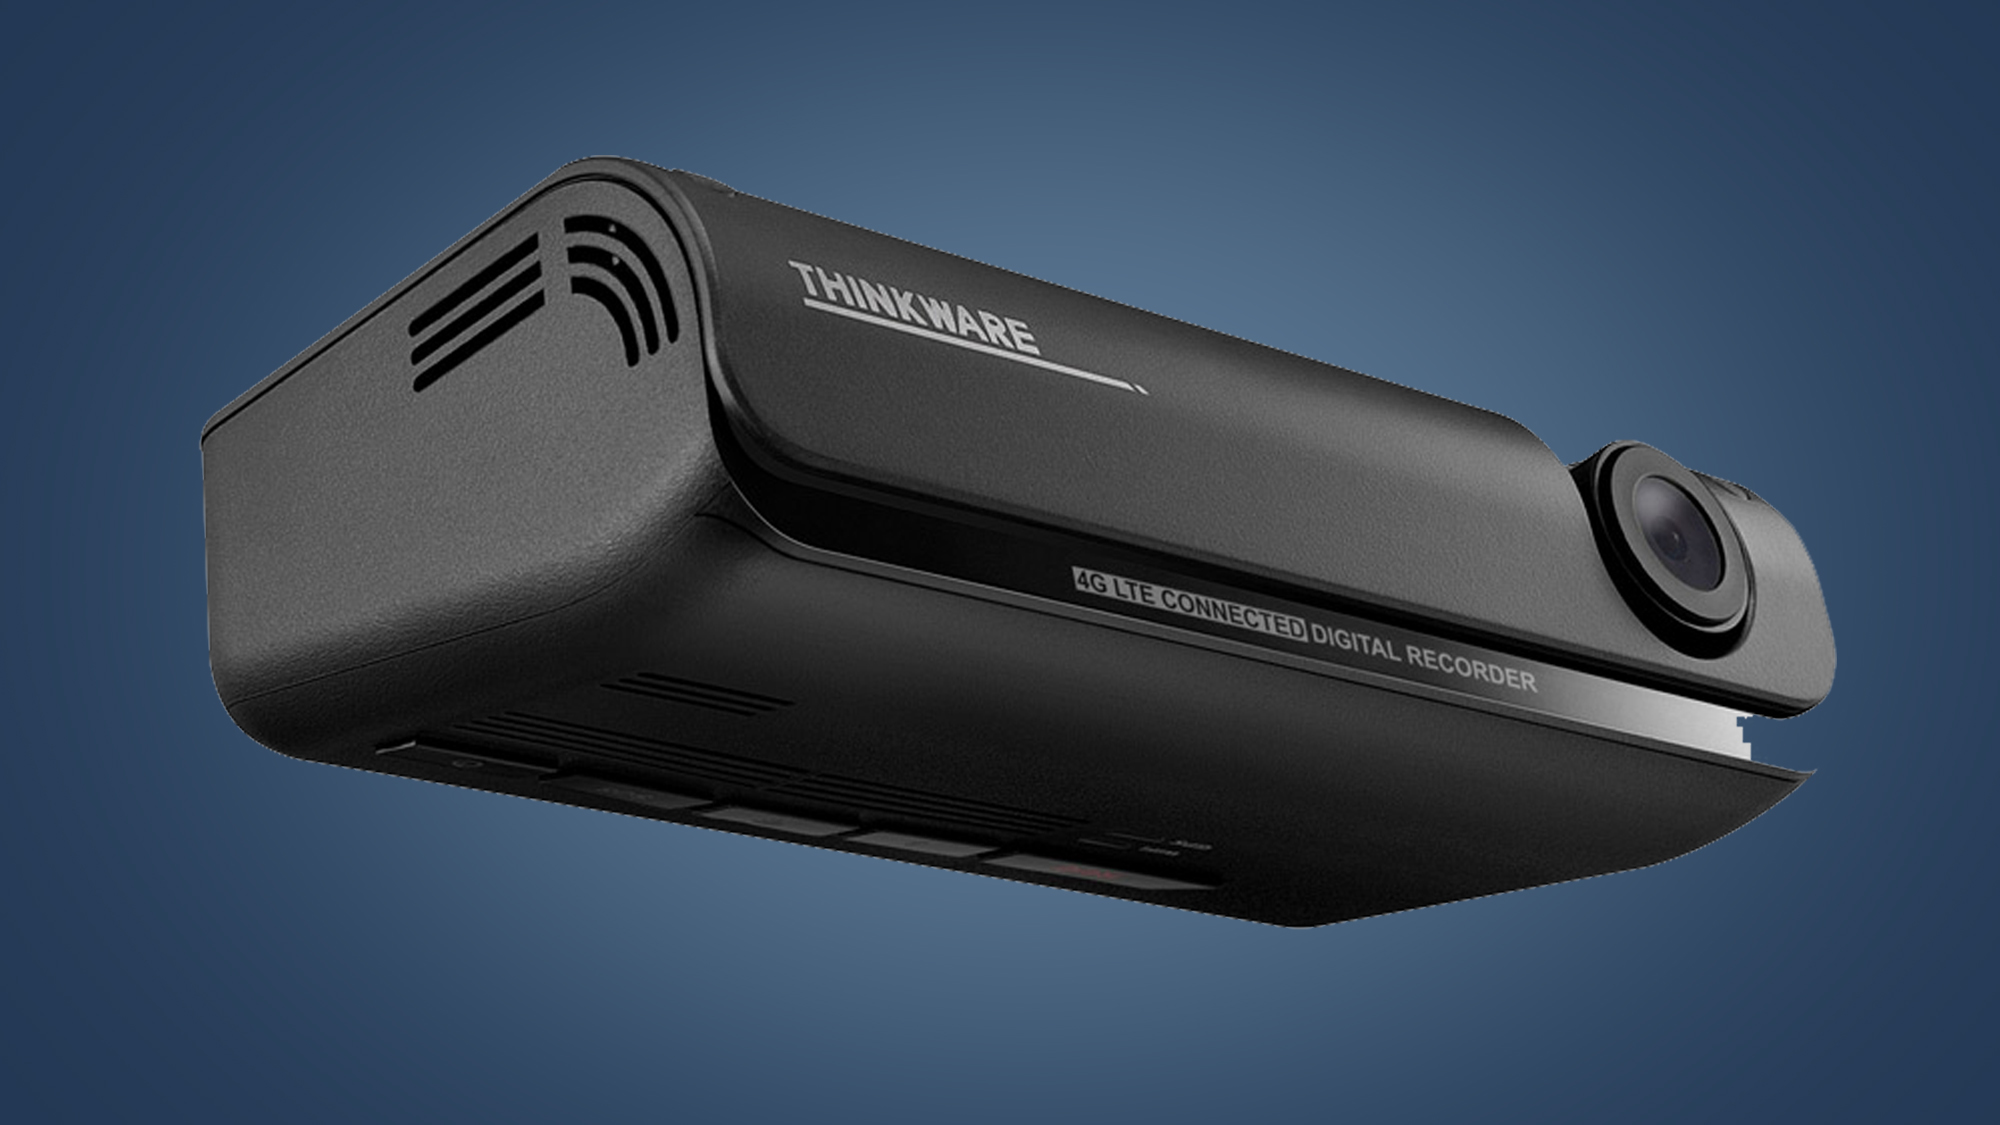 The front and underside of the Thinkware T700 dash cam